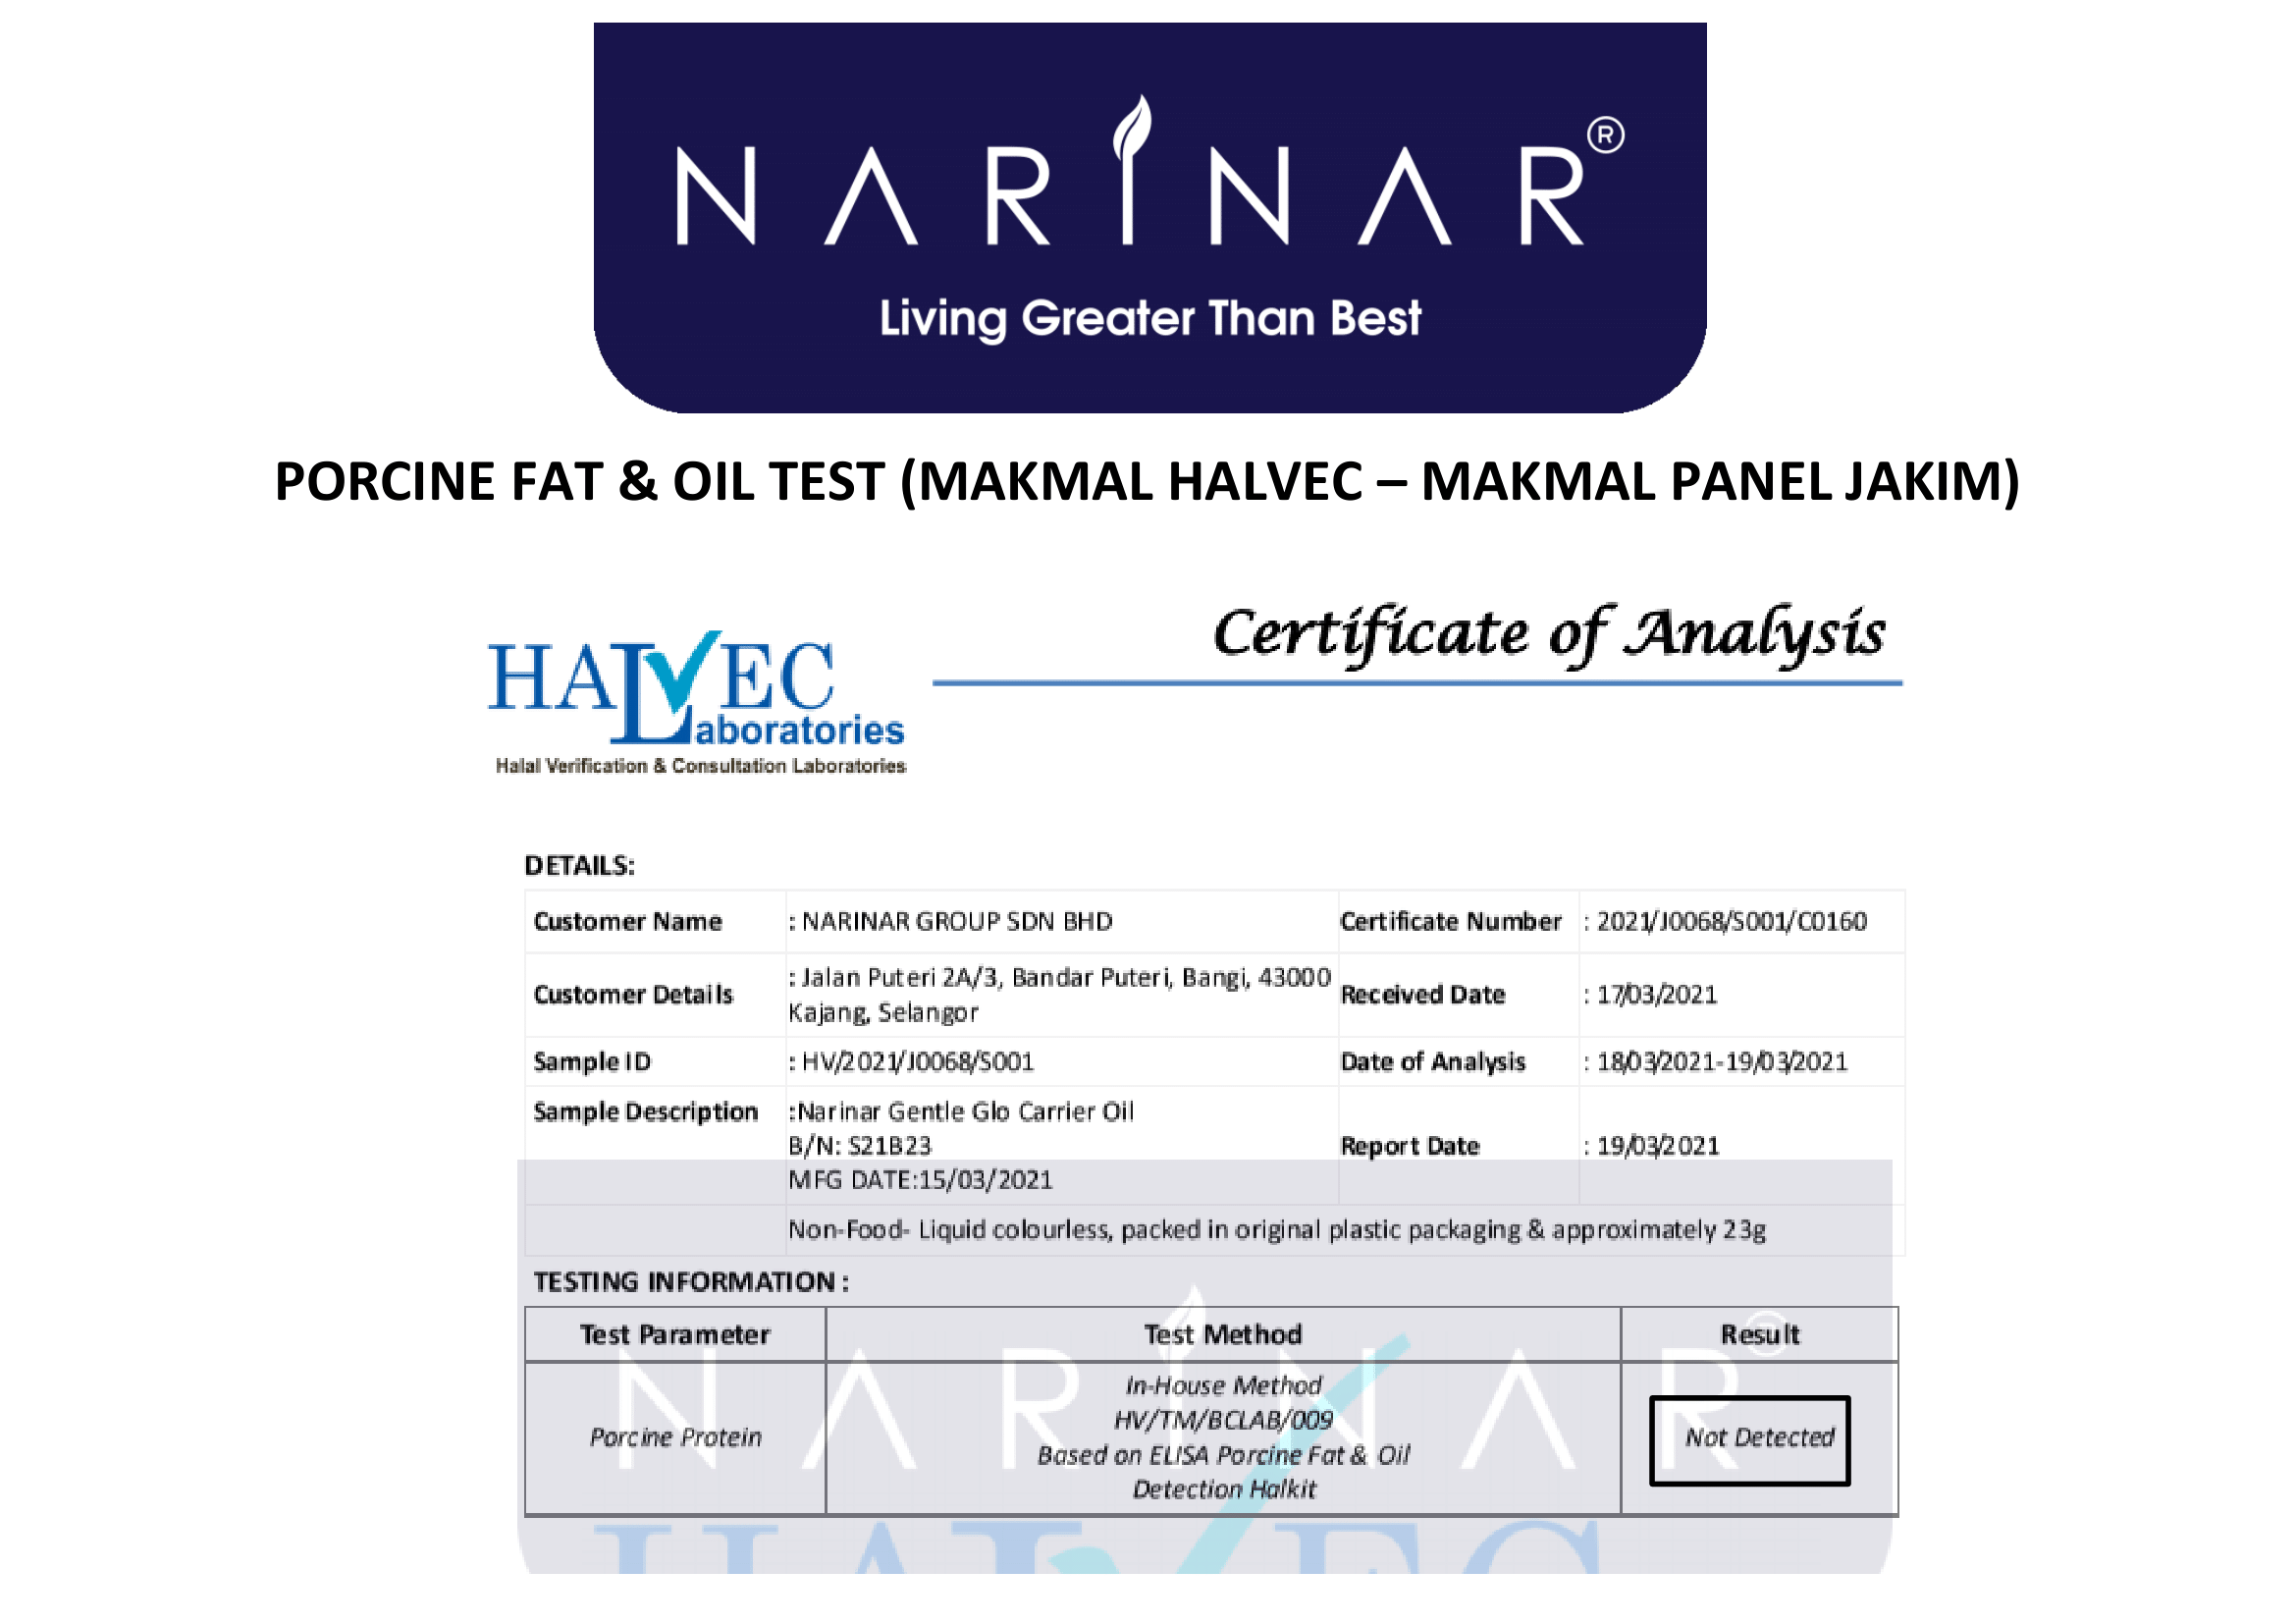 Narinar Gentle Glo Carrier Oil